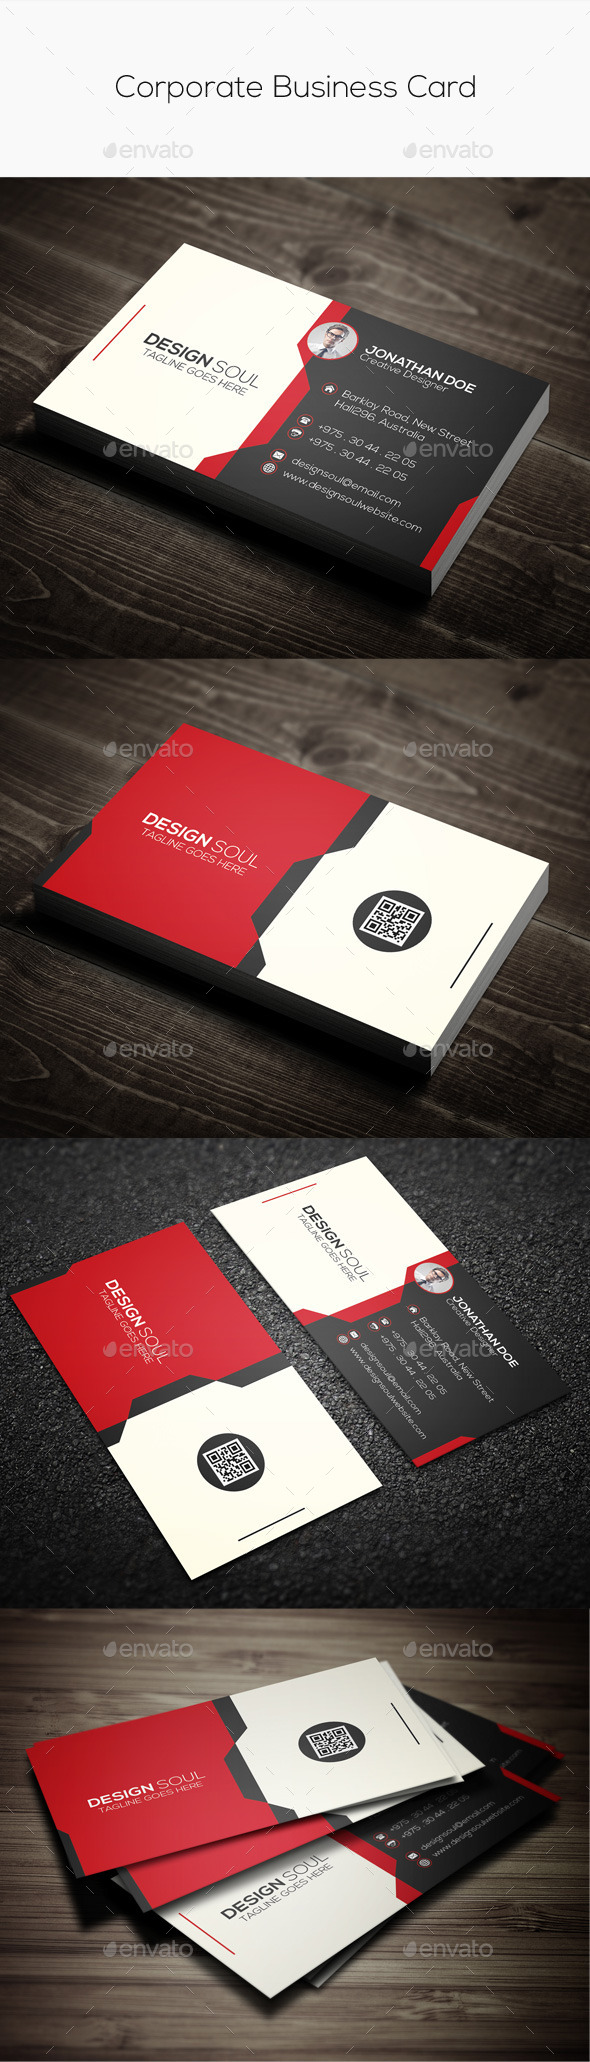 GraphicRiver Corporate Business Card 9697343